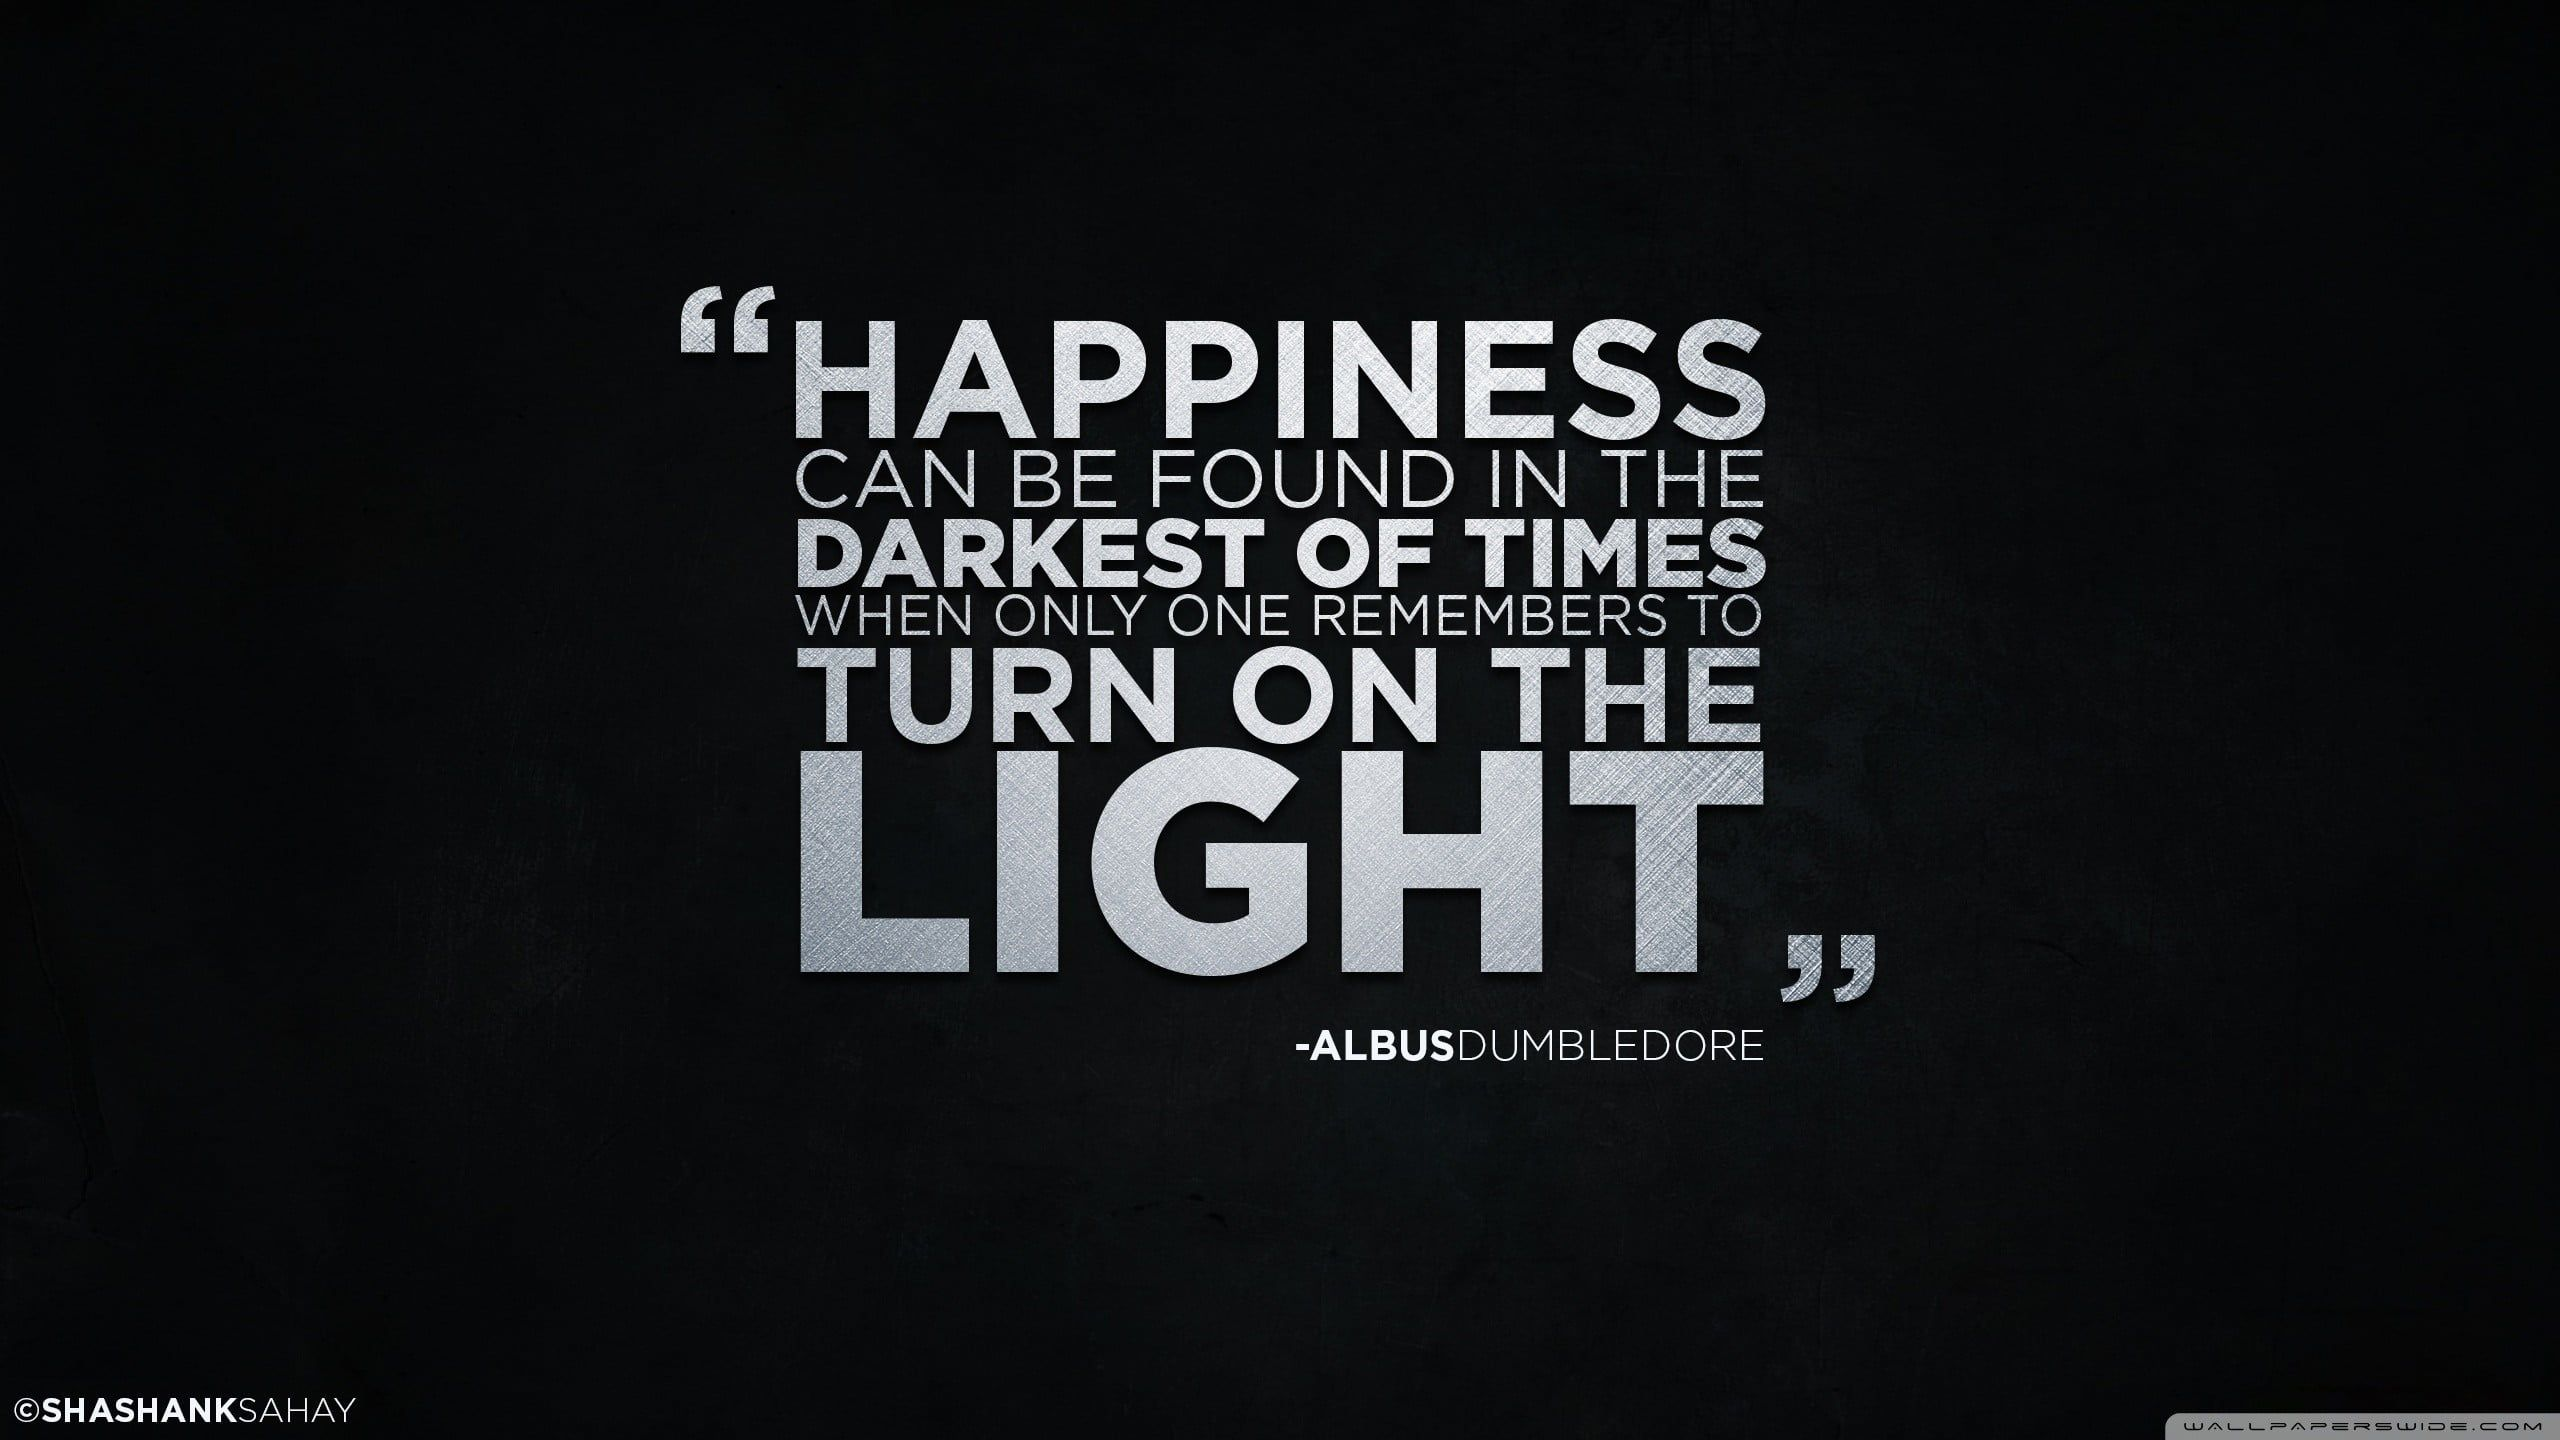 Wallpaper Black Background With Text Overlay Harry Potter Albus Dumbledore Harry Potter Quotes Wallpaper Hd Quotes Inspirational Quotes